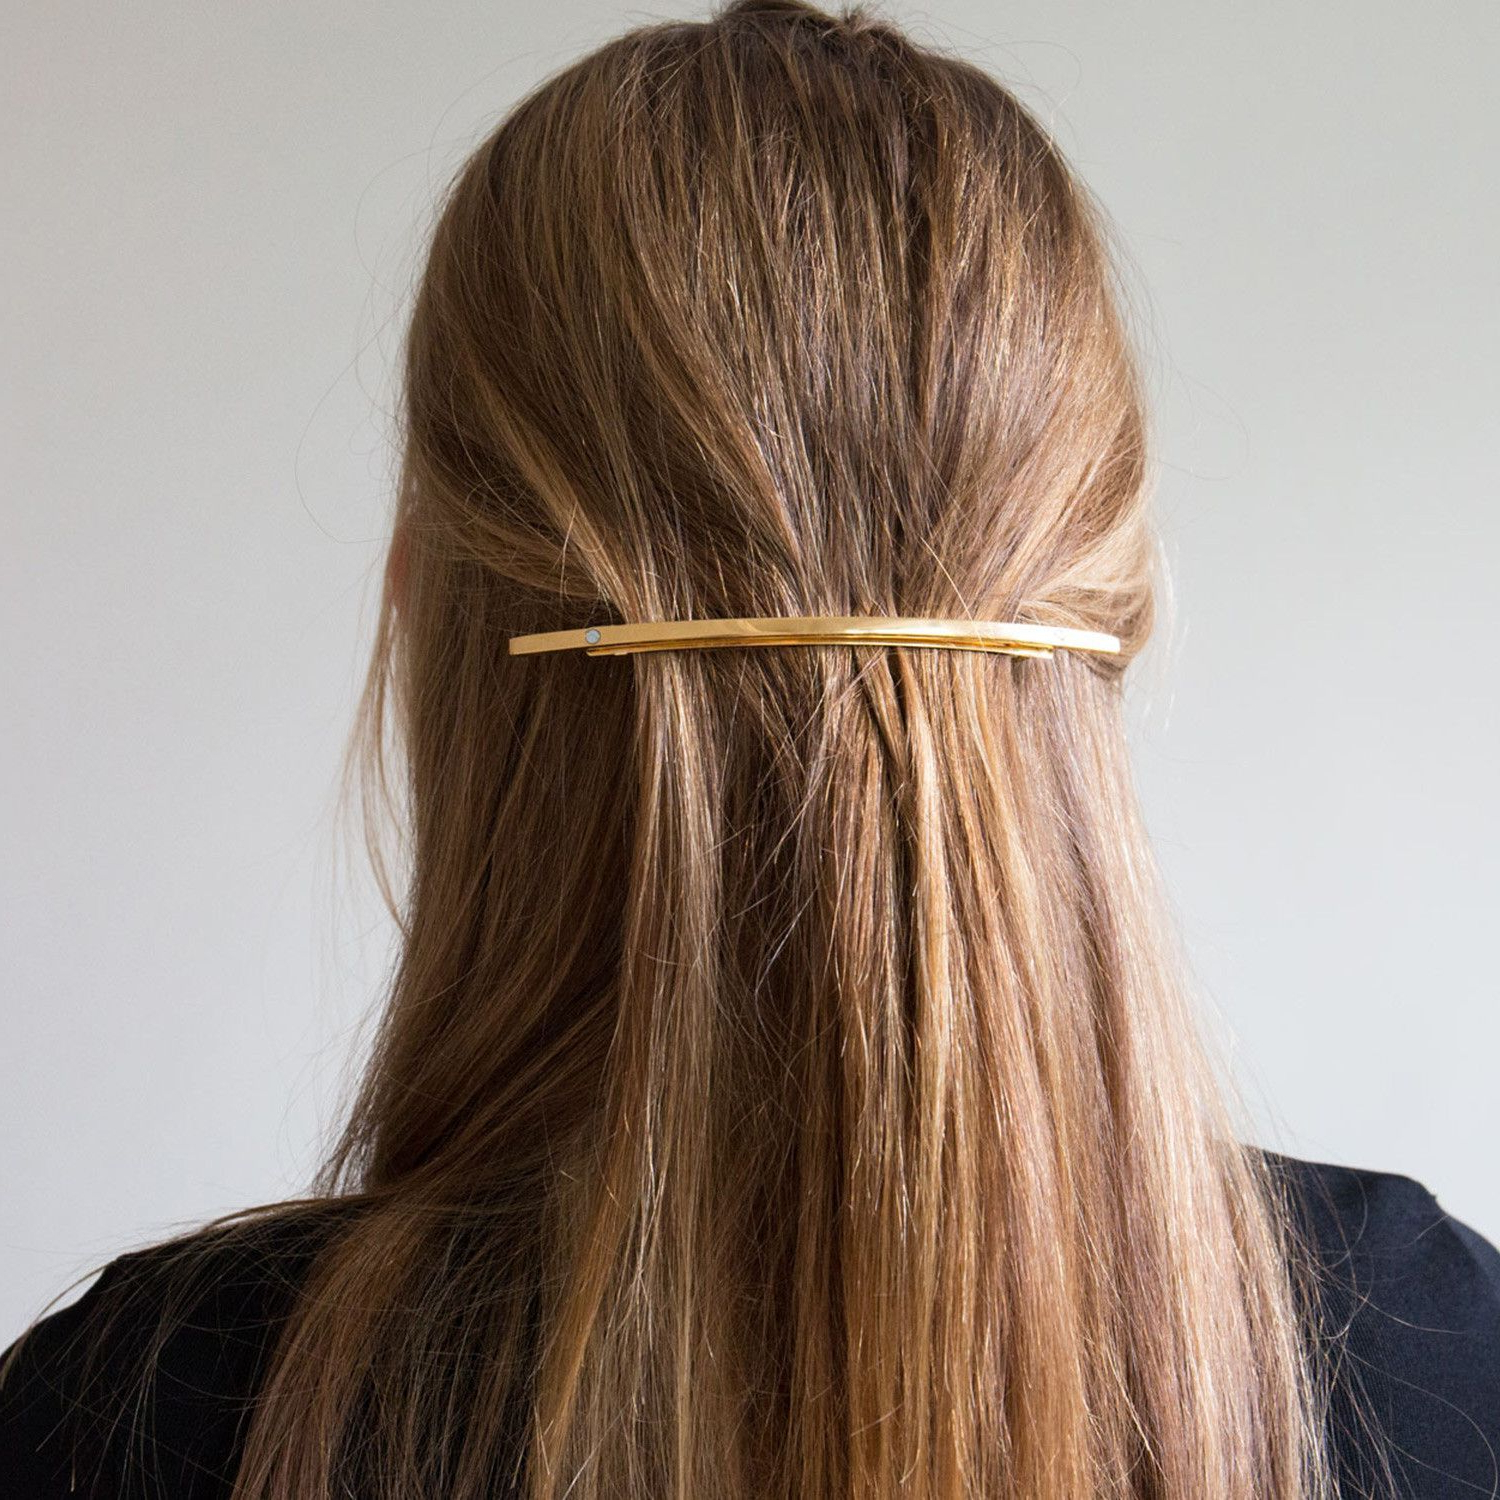 Well Known Graded Ponytail Hairstyles With A Butterfly Clasp Within Sylvain Le Hen Gold Hair Barrette (Gallery 4 of 20)